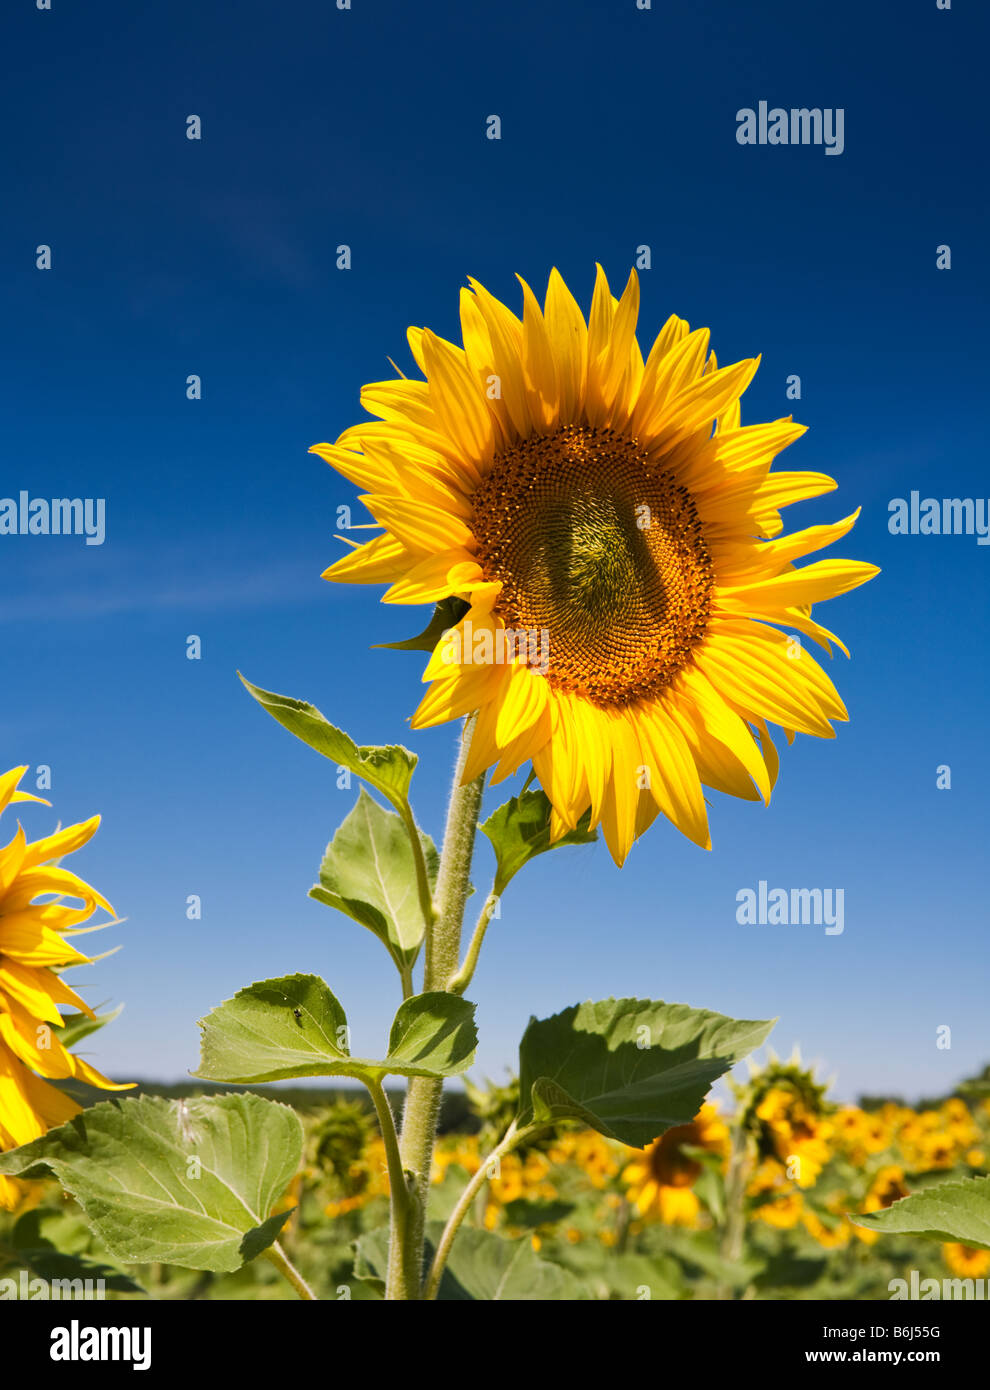 Ripe sunflower against a blue sky in southwest France Europe - Stock Image